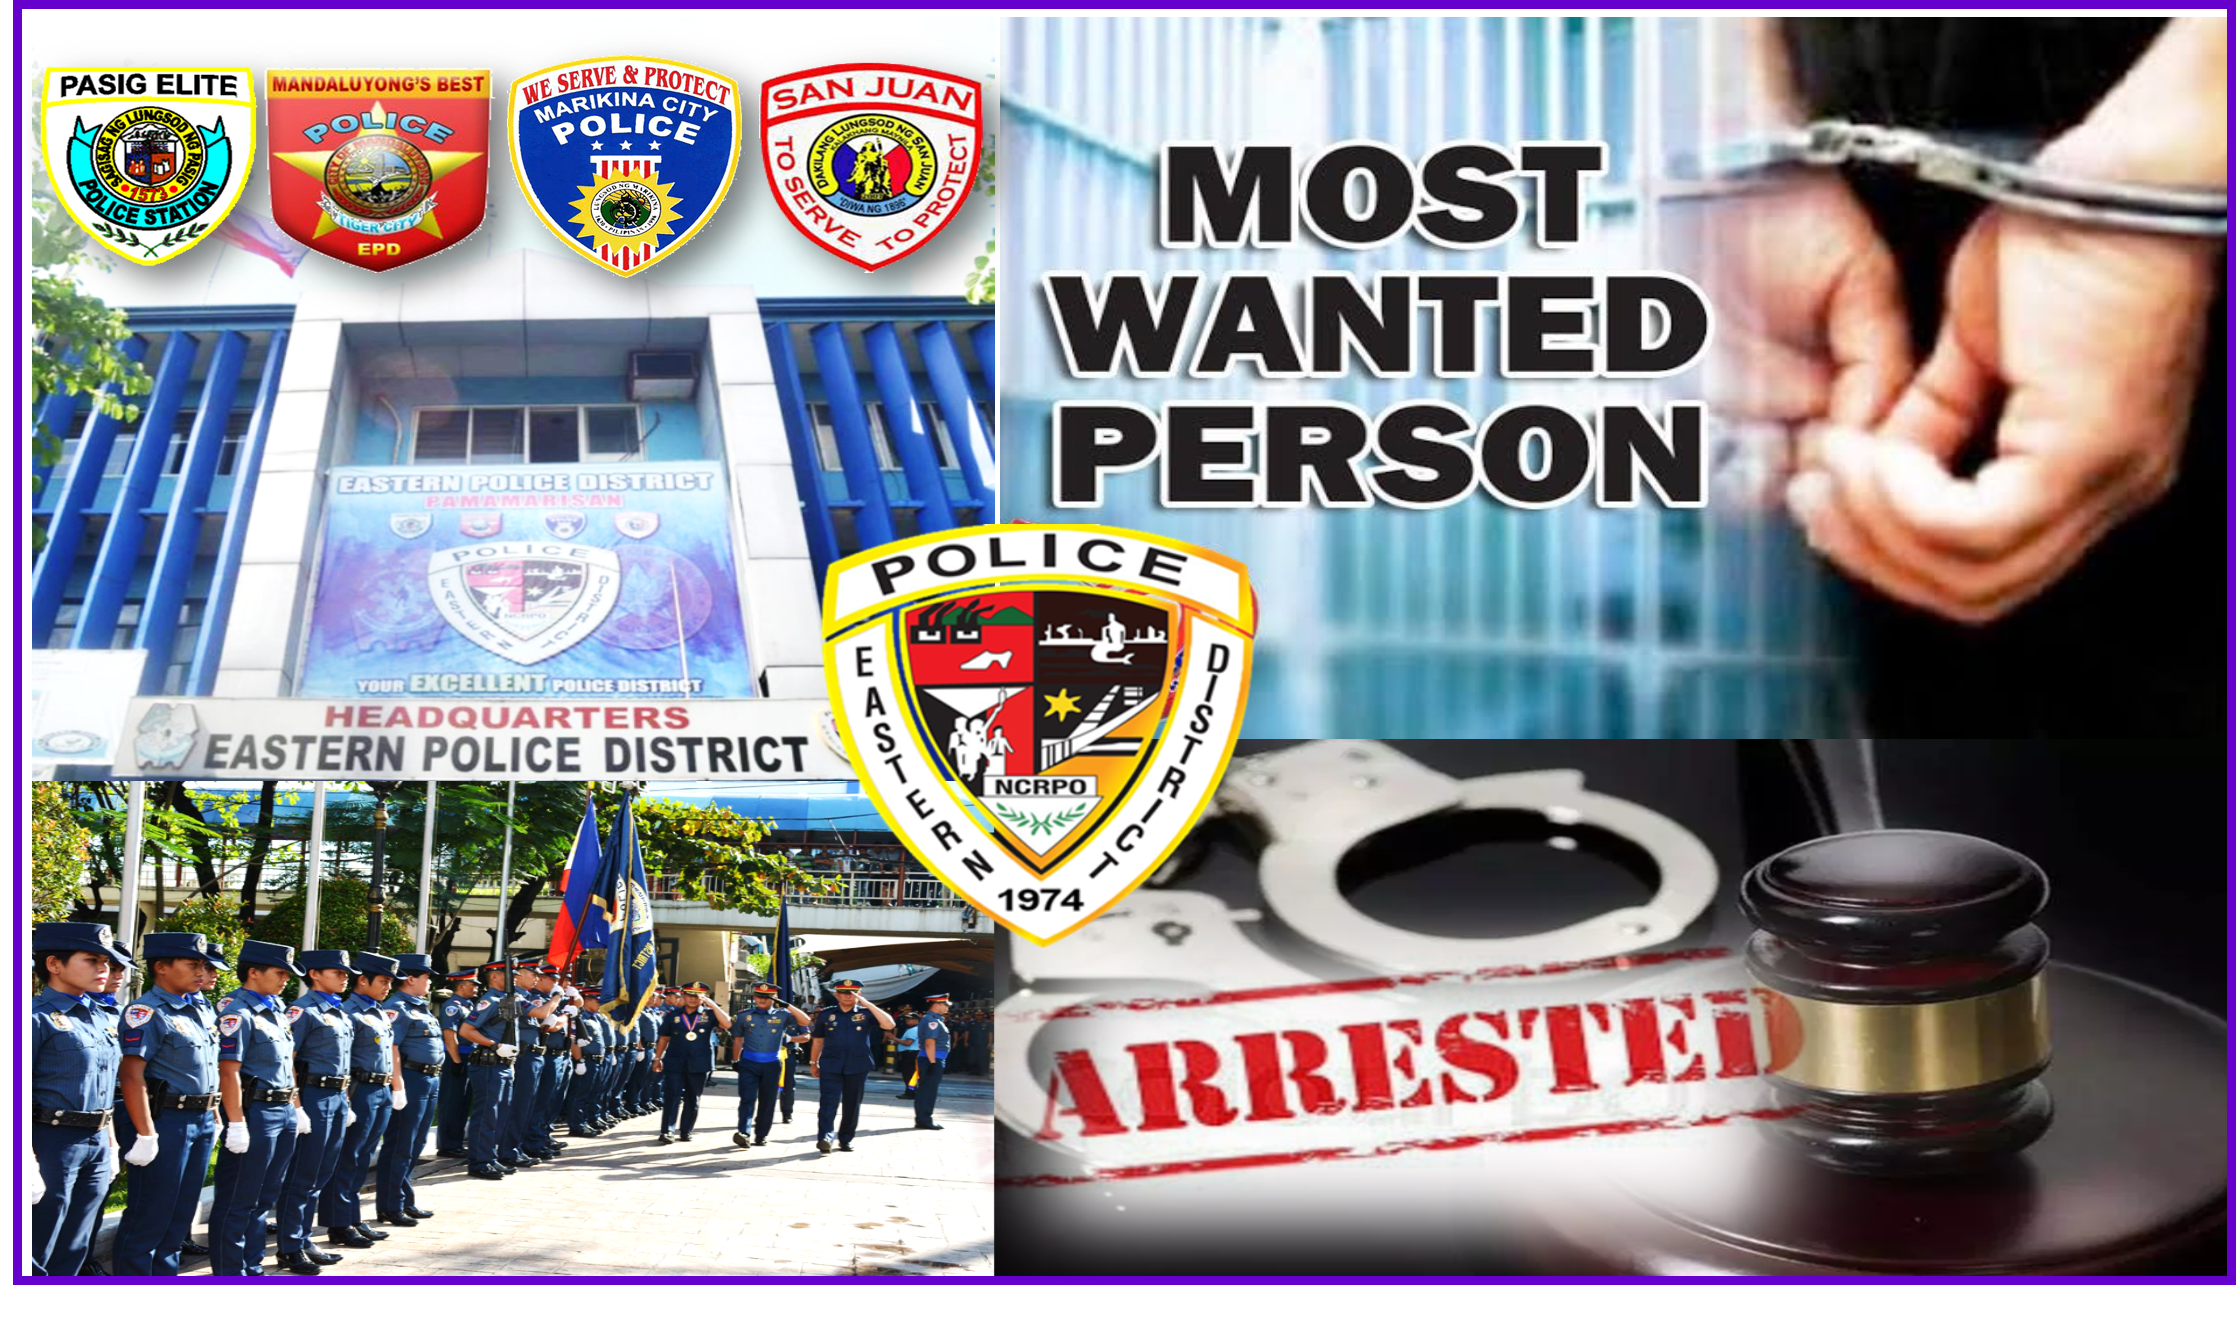 Fifteen (15) Most Wanted Person Captured in EPD's Simultaneous Manhunt Operations in a Day